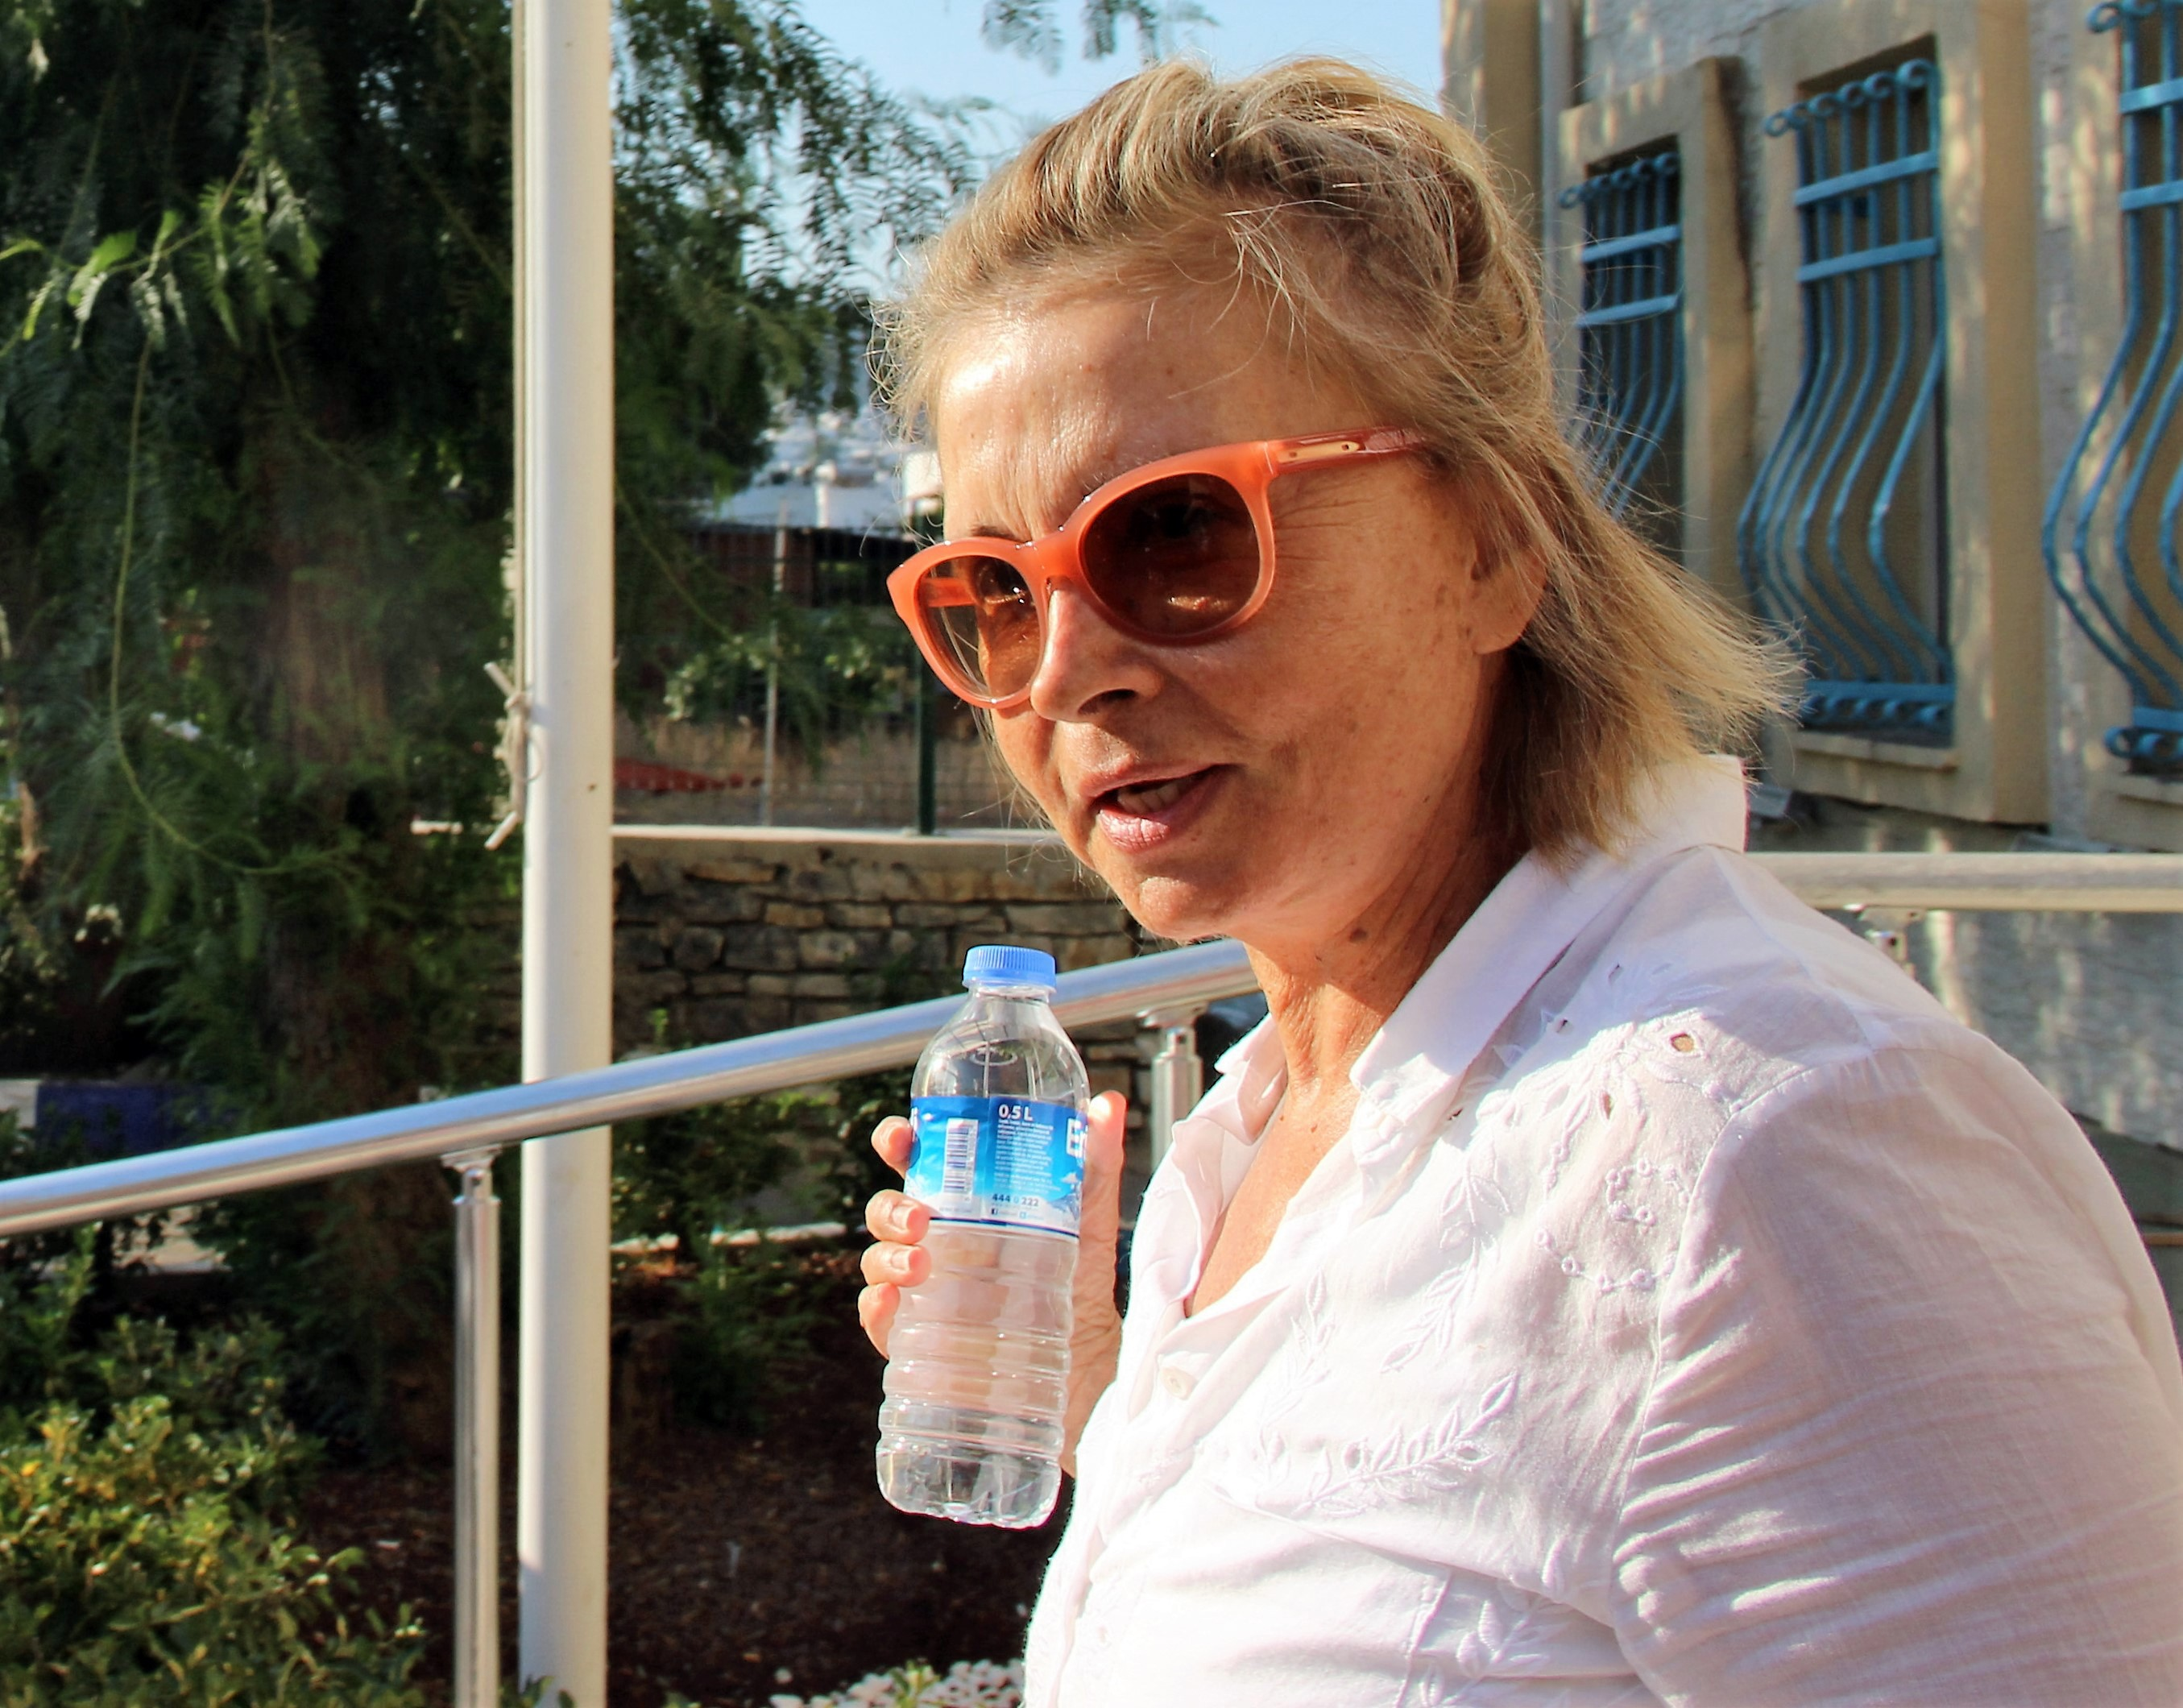 This picture obtained from the Ihlas News Agency shows journalist Nazli Ilicak posing in Mugla on July 26, 2016 after being detained by Turkish police. Turkish authorities on July 26 detained a veteran female reporter as part of the investigation into the failed July 15 coup after issuing warrants for over 40 journalists in a move that caused international concern. Nazli Ilicak was on a list of 42 journalists sought for arrest issued by Istanbul prosecutors early on July 25.  / AFP / IHLAS NEWS AGENCY / IHLAS NEWS AGENCY        (Photo credit should read IHLAS NEWS AGENCY/AFP/Getty Images)